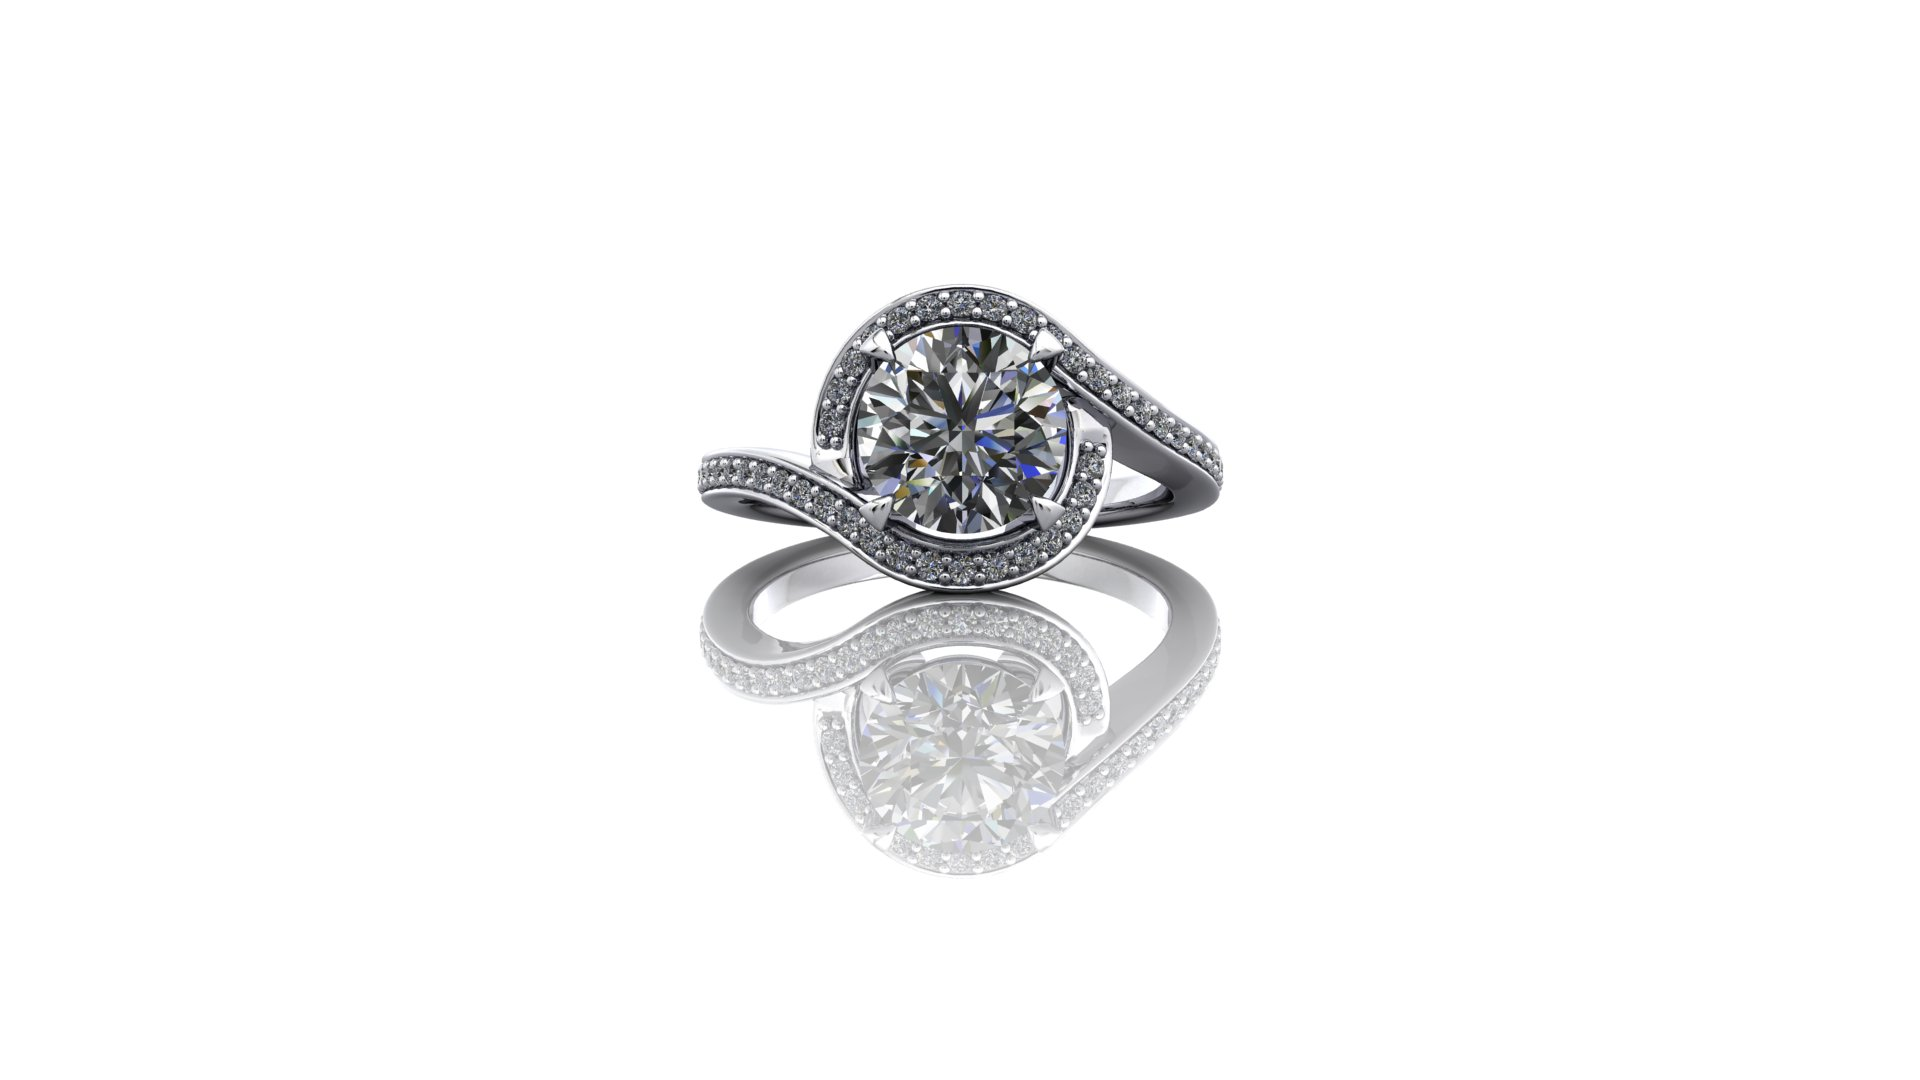 """Platinum Engagement Ring   """"Just wanted to write you a note to say thank you so much for all your help with designing, sorting and making Louise's ring. It really is perfect and we're both absolutely delighted!  """"Louise didn't have a clue either so that's great! Now we've just got to plan a wedding!"""" - Mr Kemp, Leeds"""